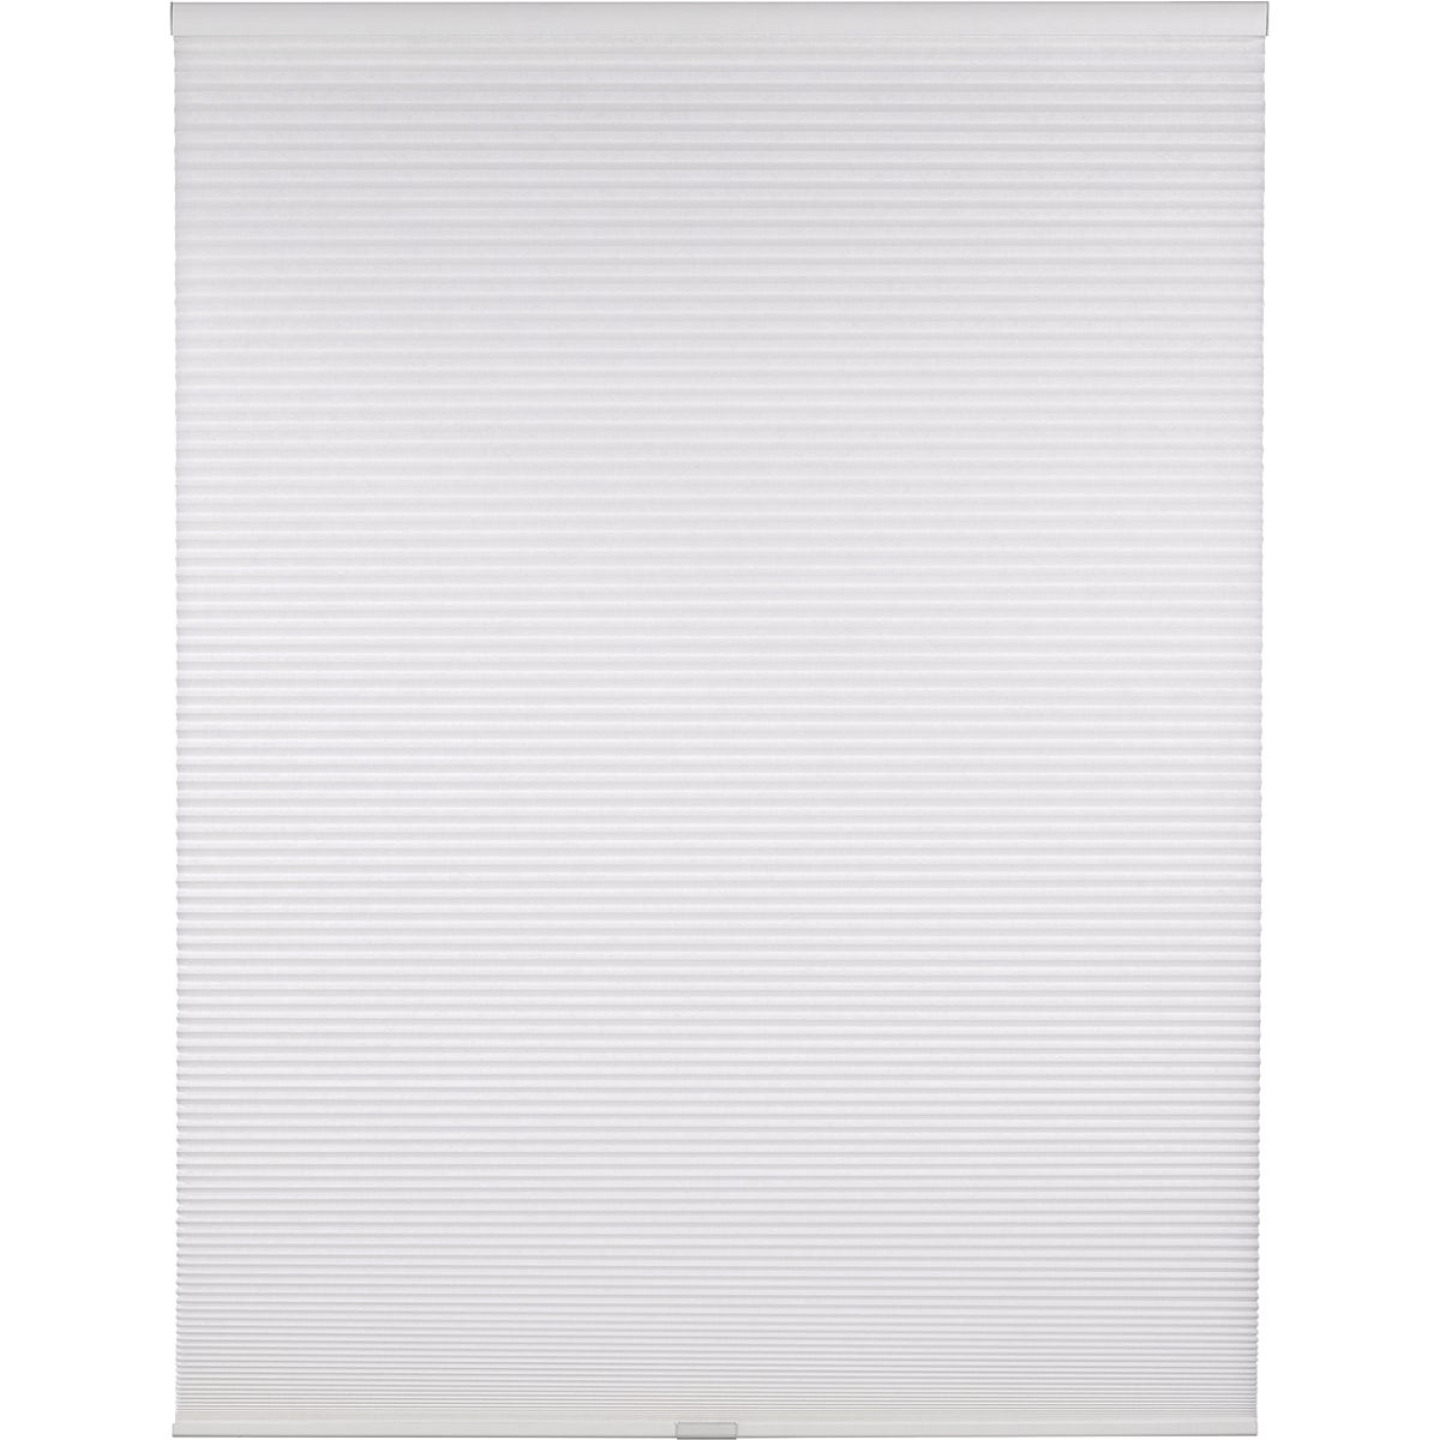 Home Impressions 1 In. Light Filtering Cellular White 35 In. x 72 In. Cordless Shade Image 1